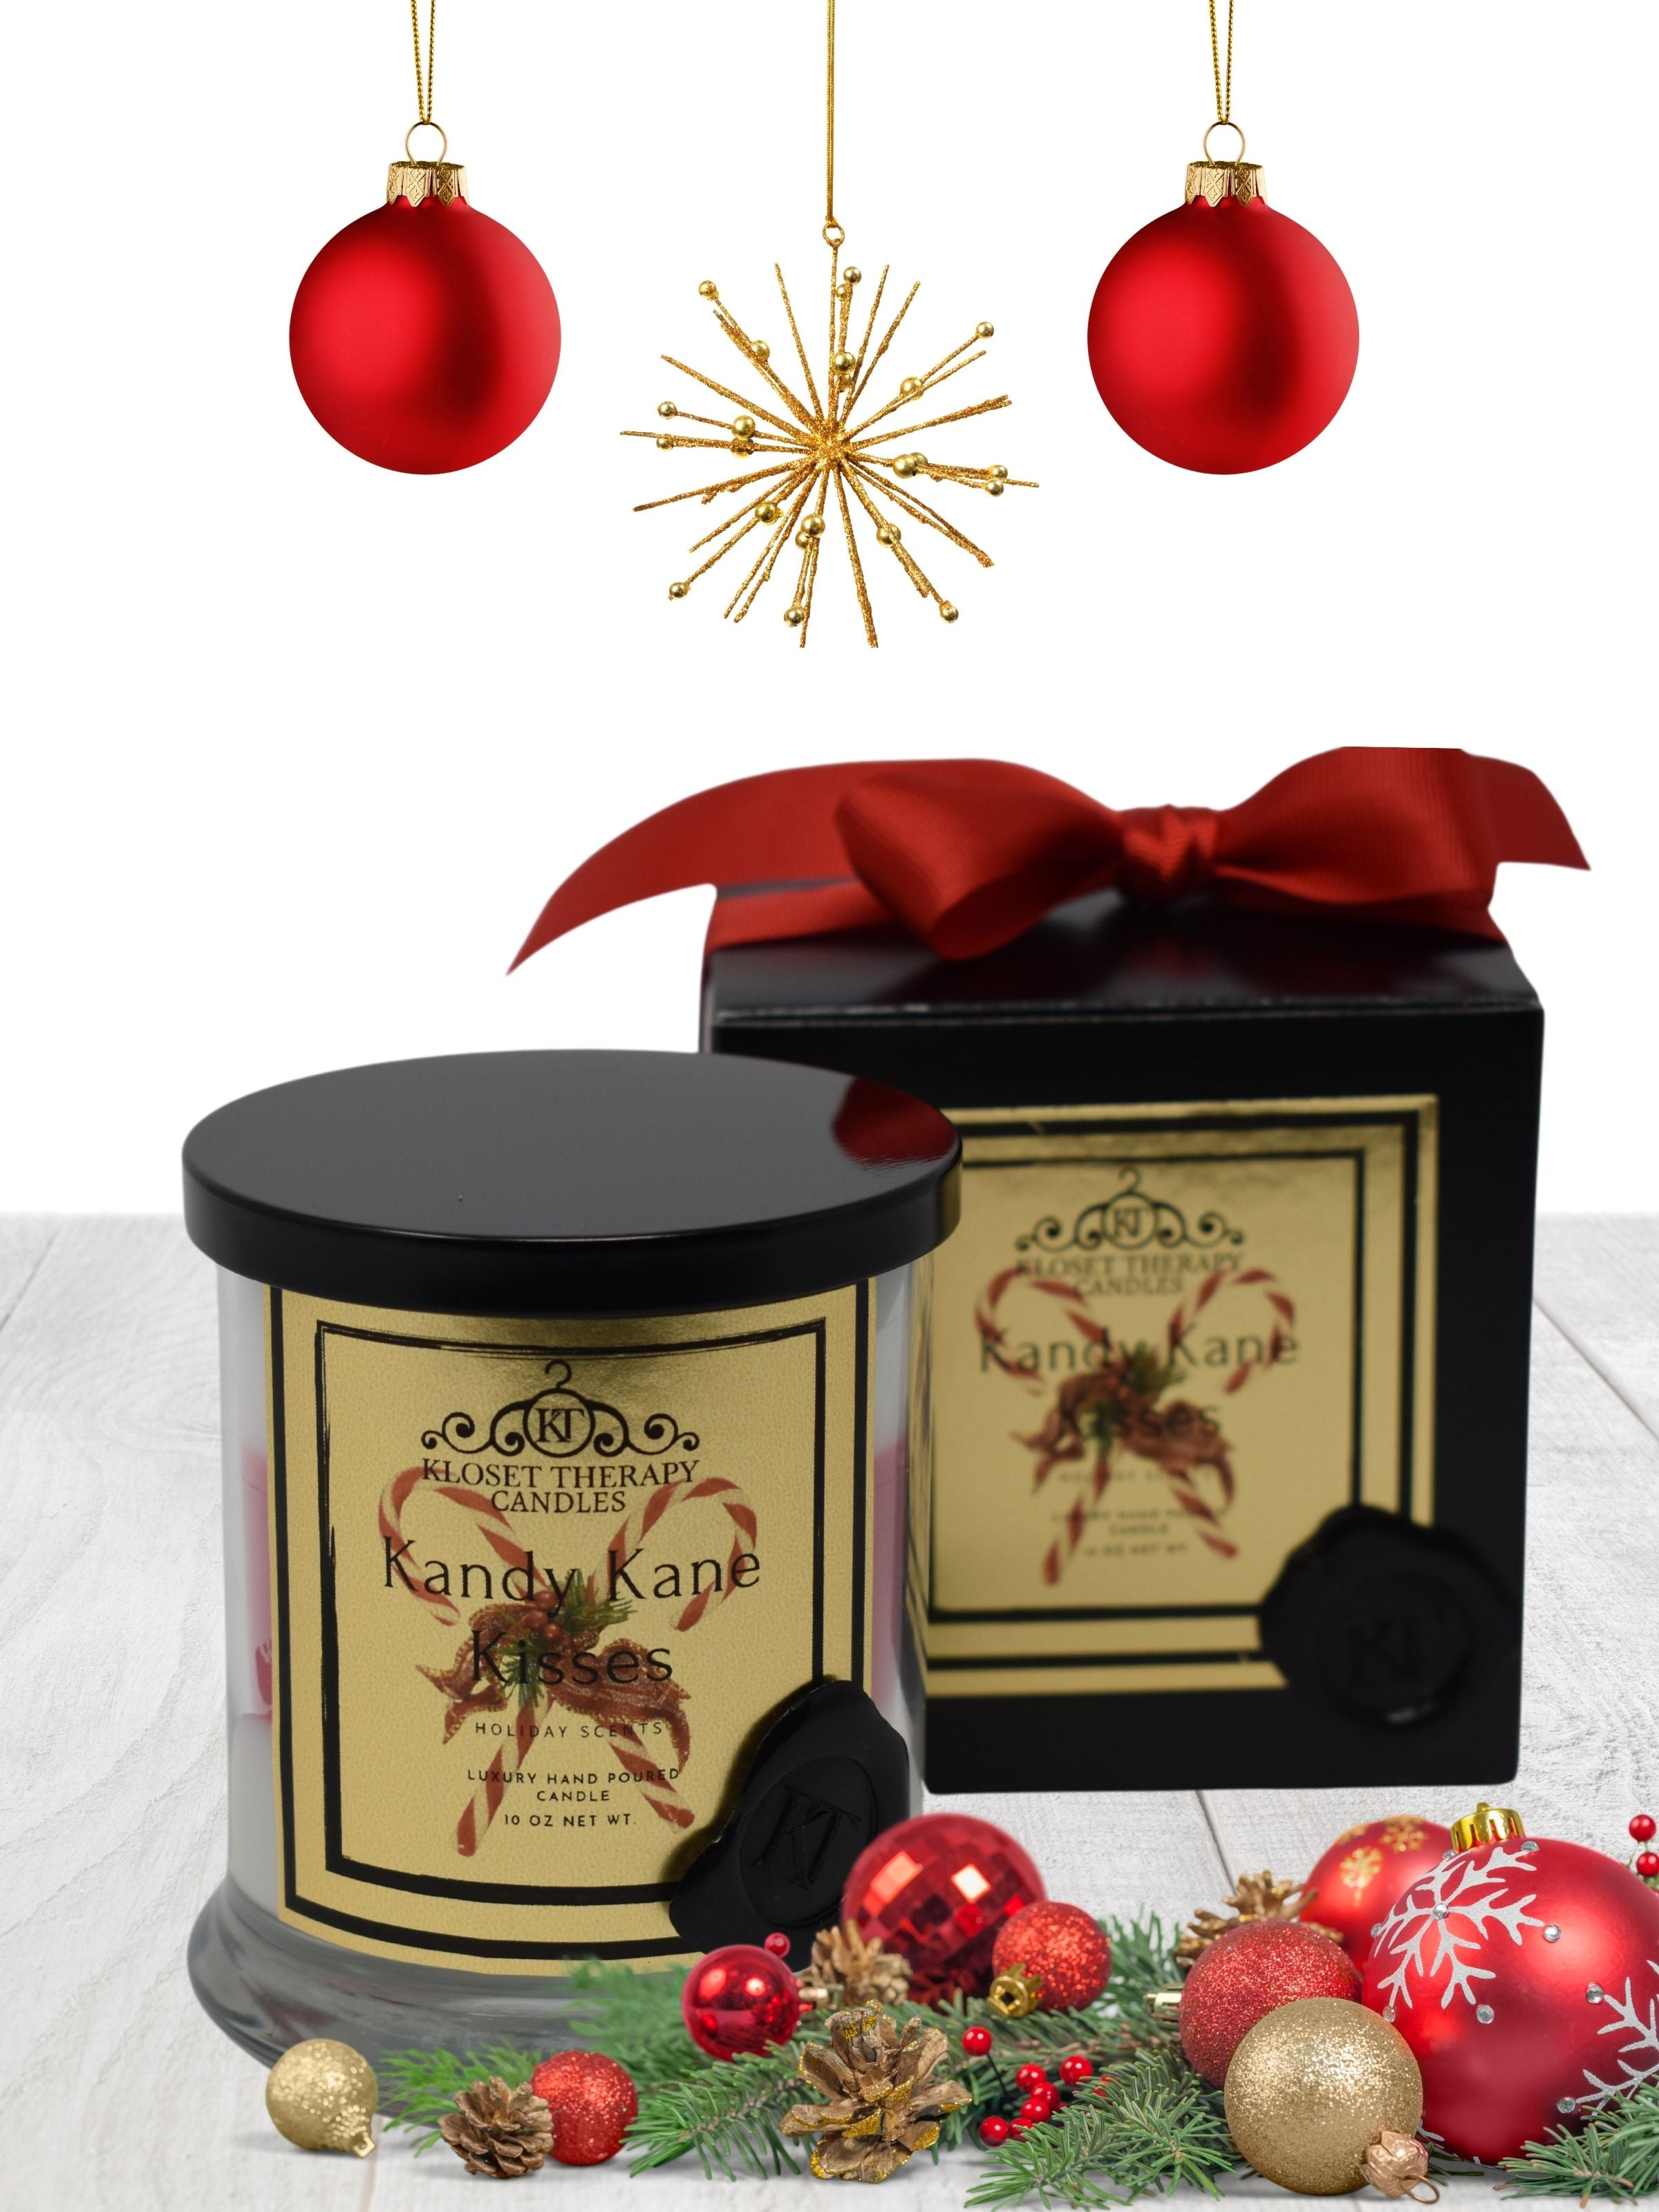 Kandy Kane Kisses 2 wick candle